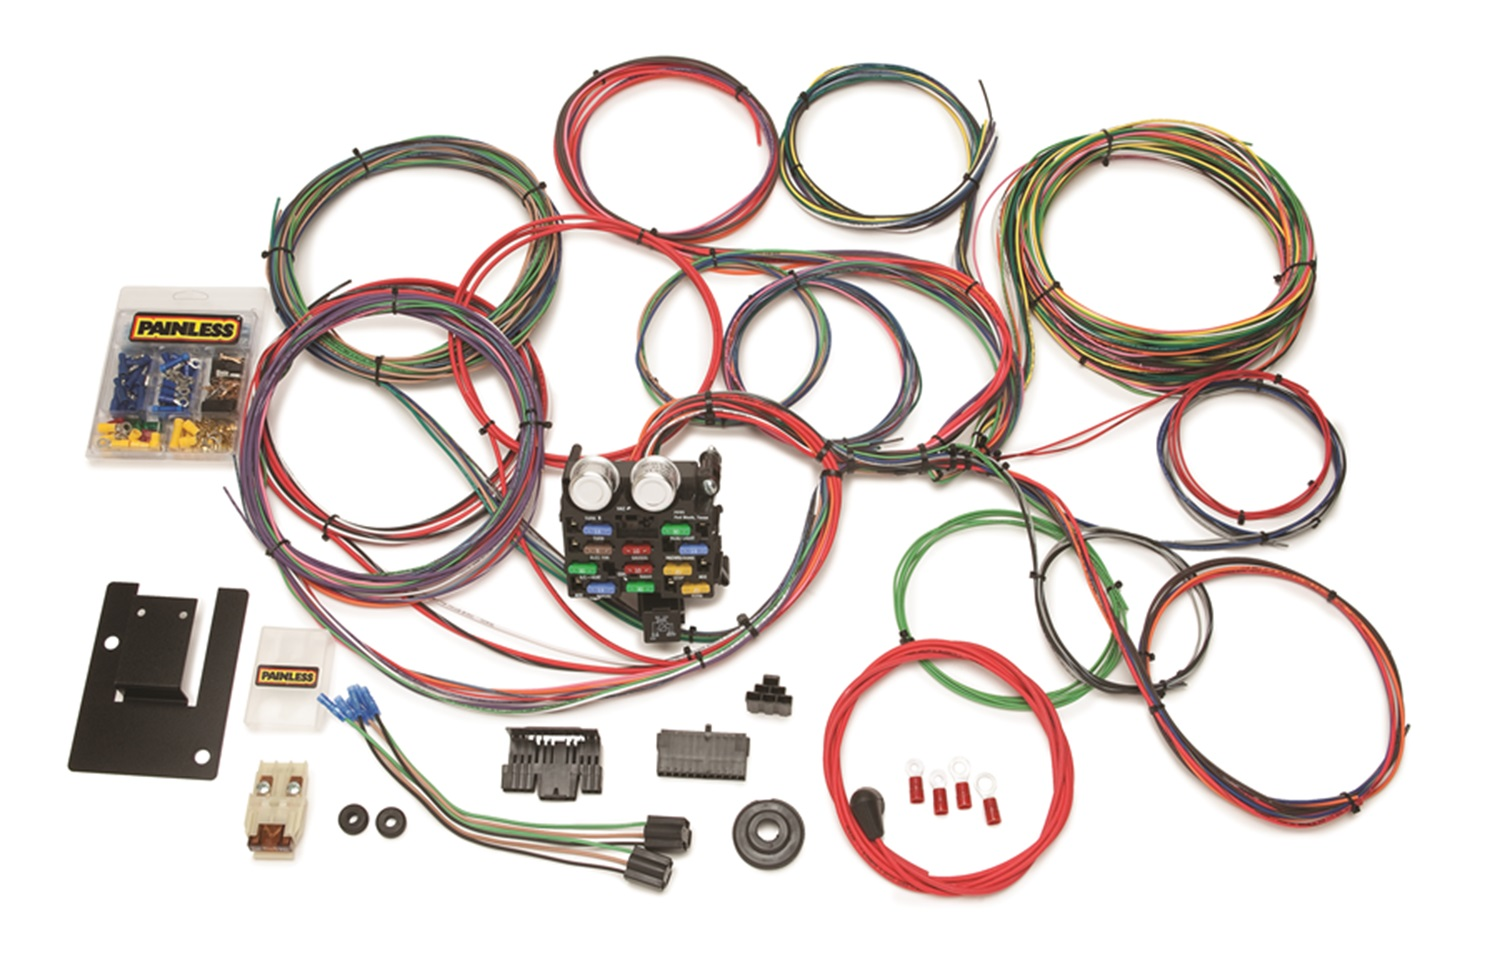 painless wiring xlr connector diagram 20107 12 circuit harness assembly